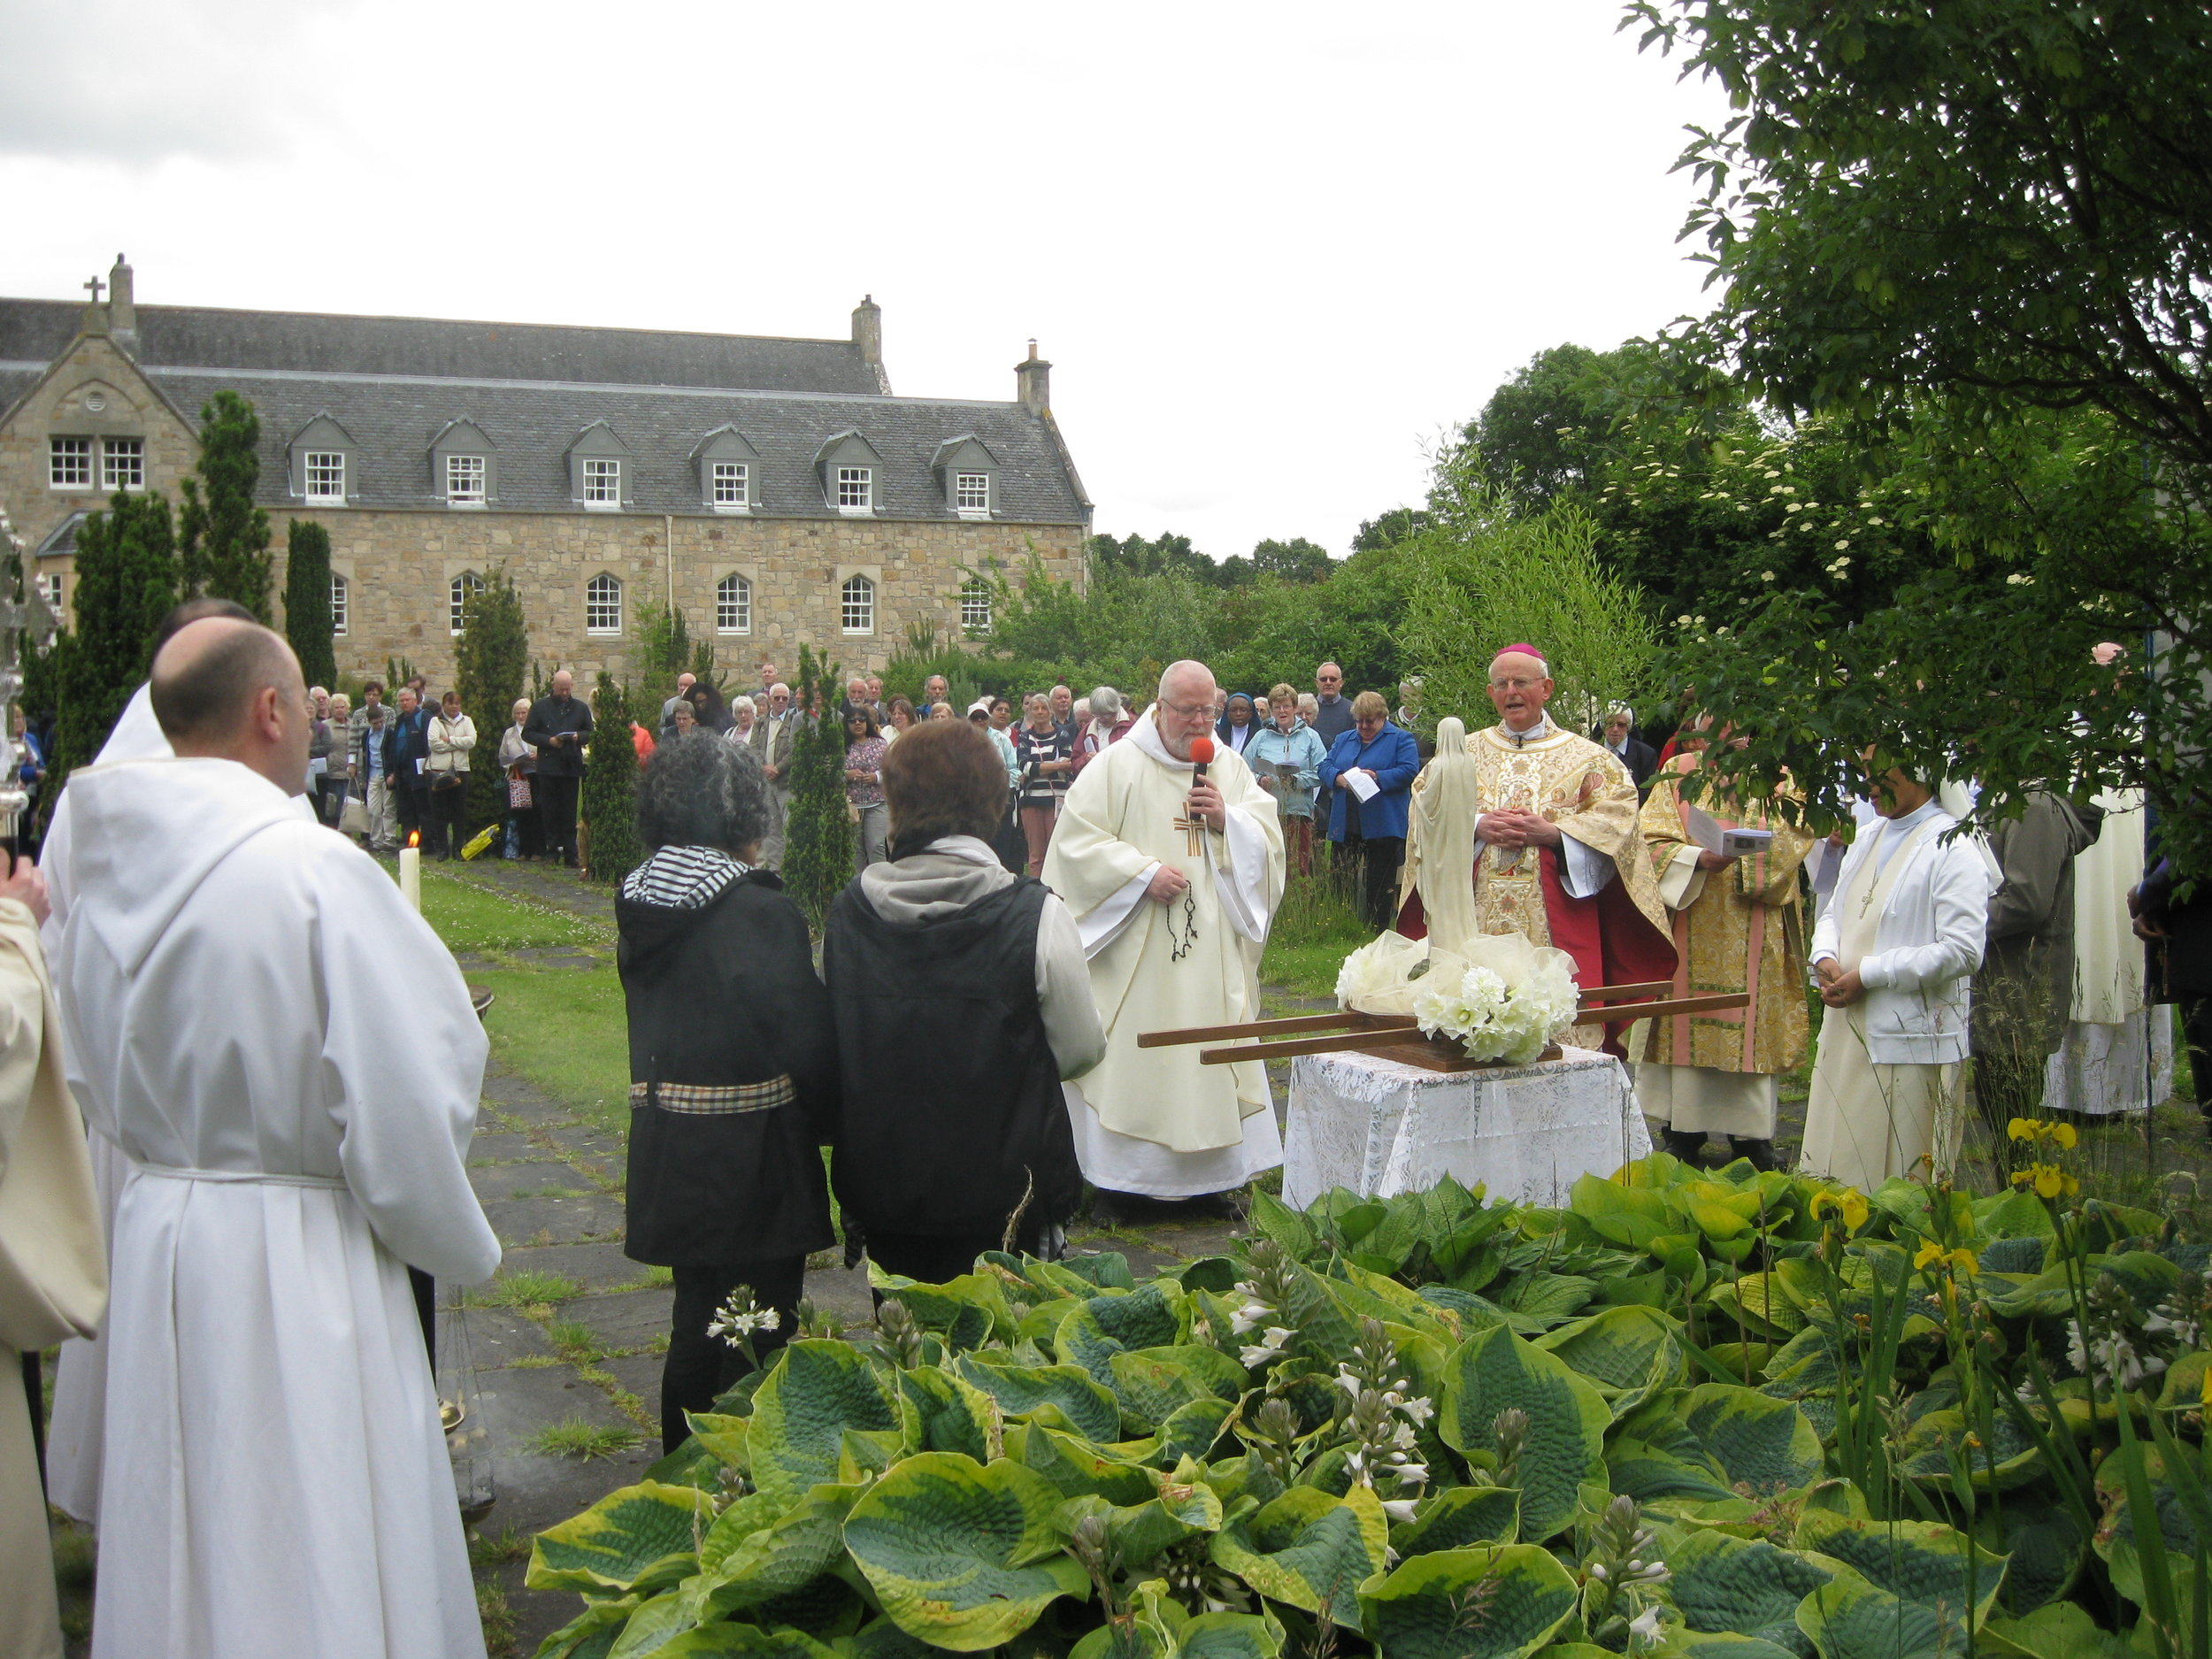 Fr. Abbot leads the rosary 2